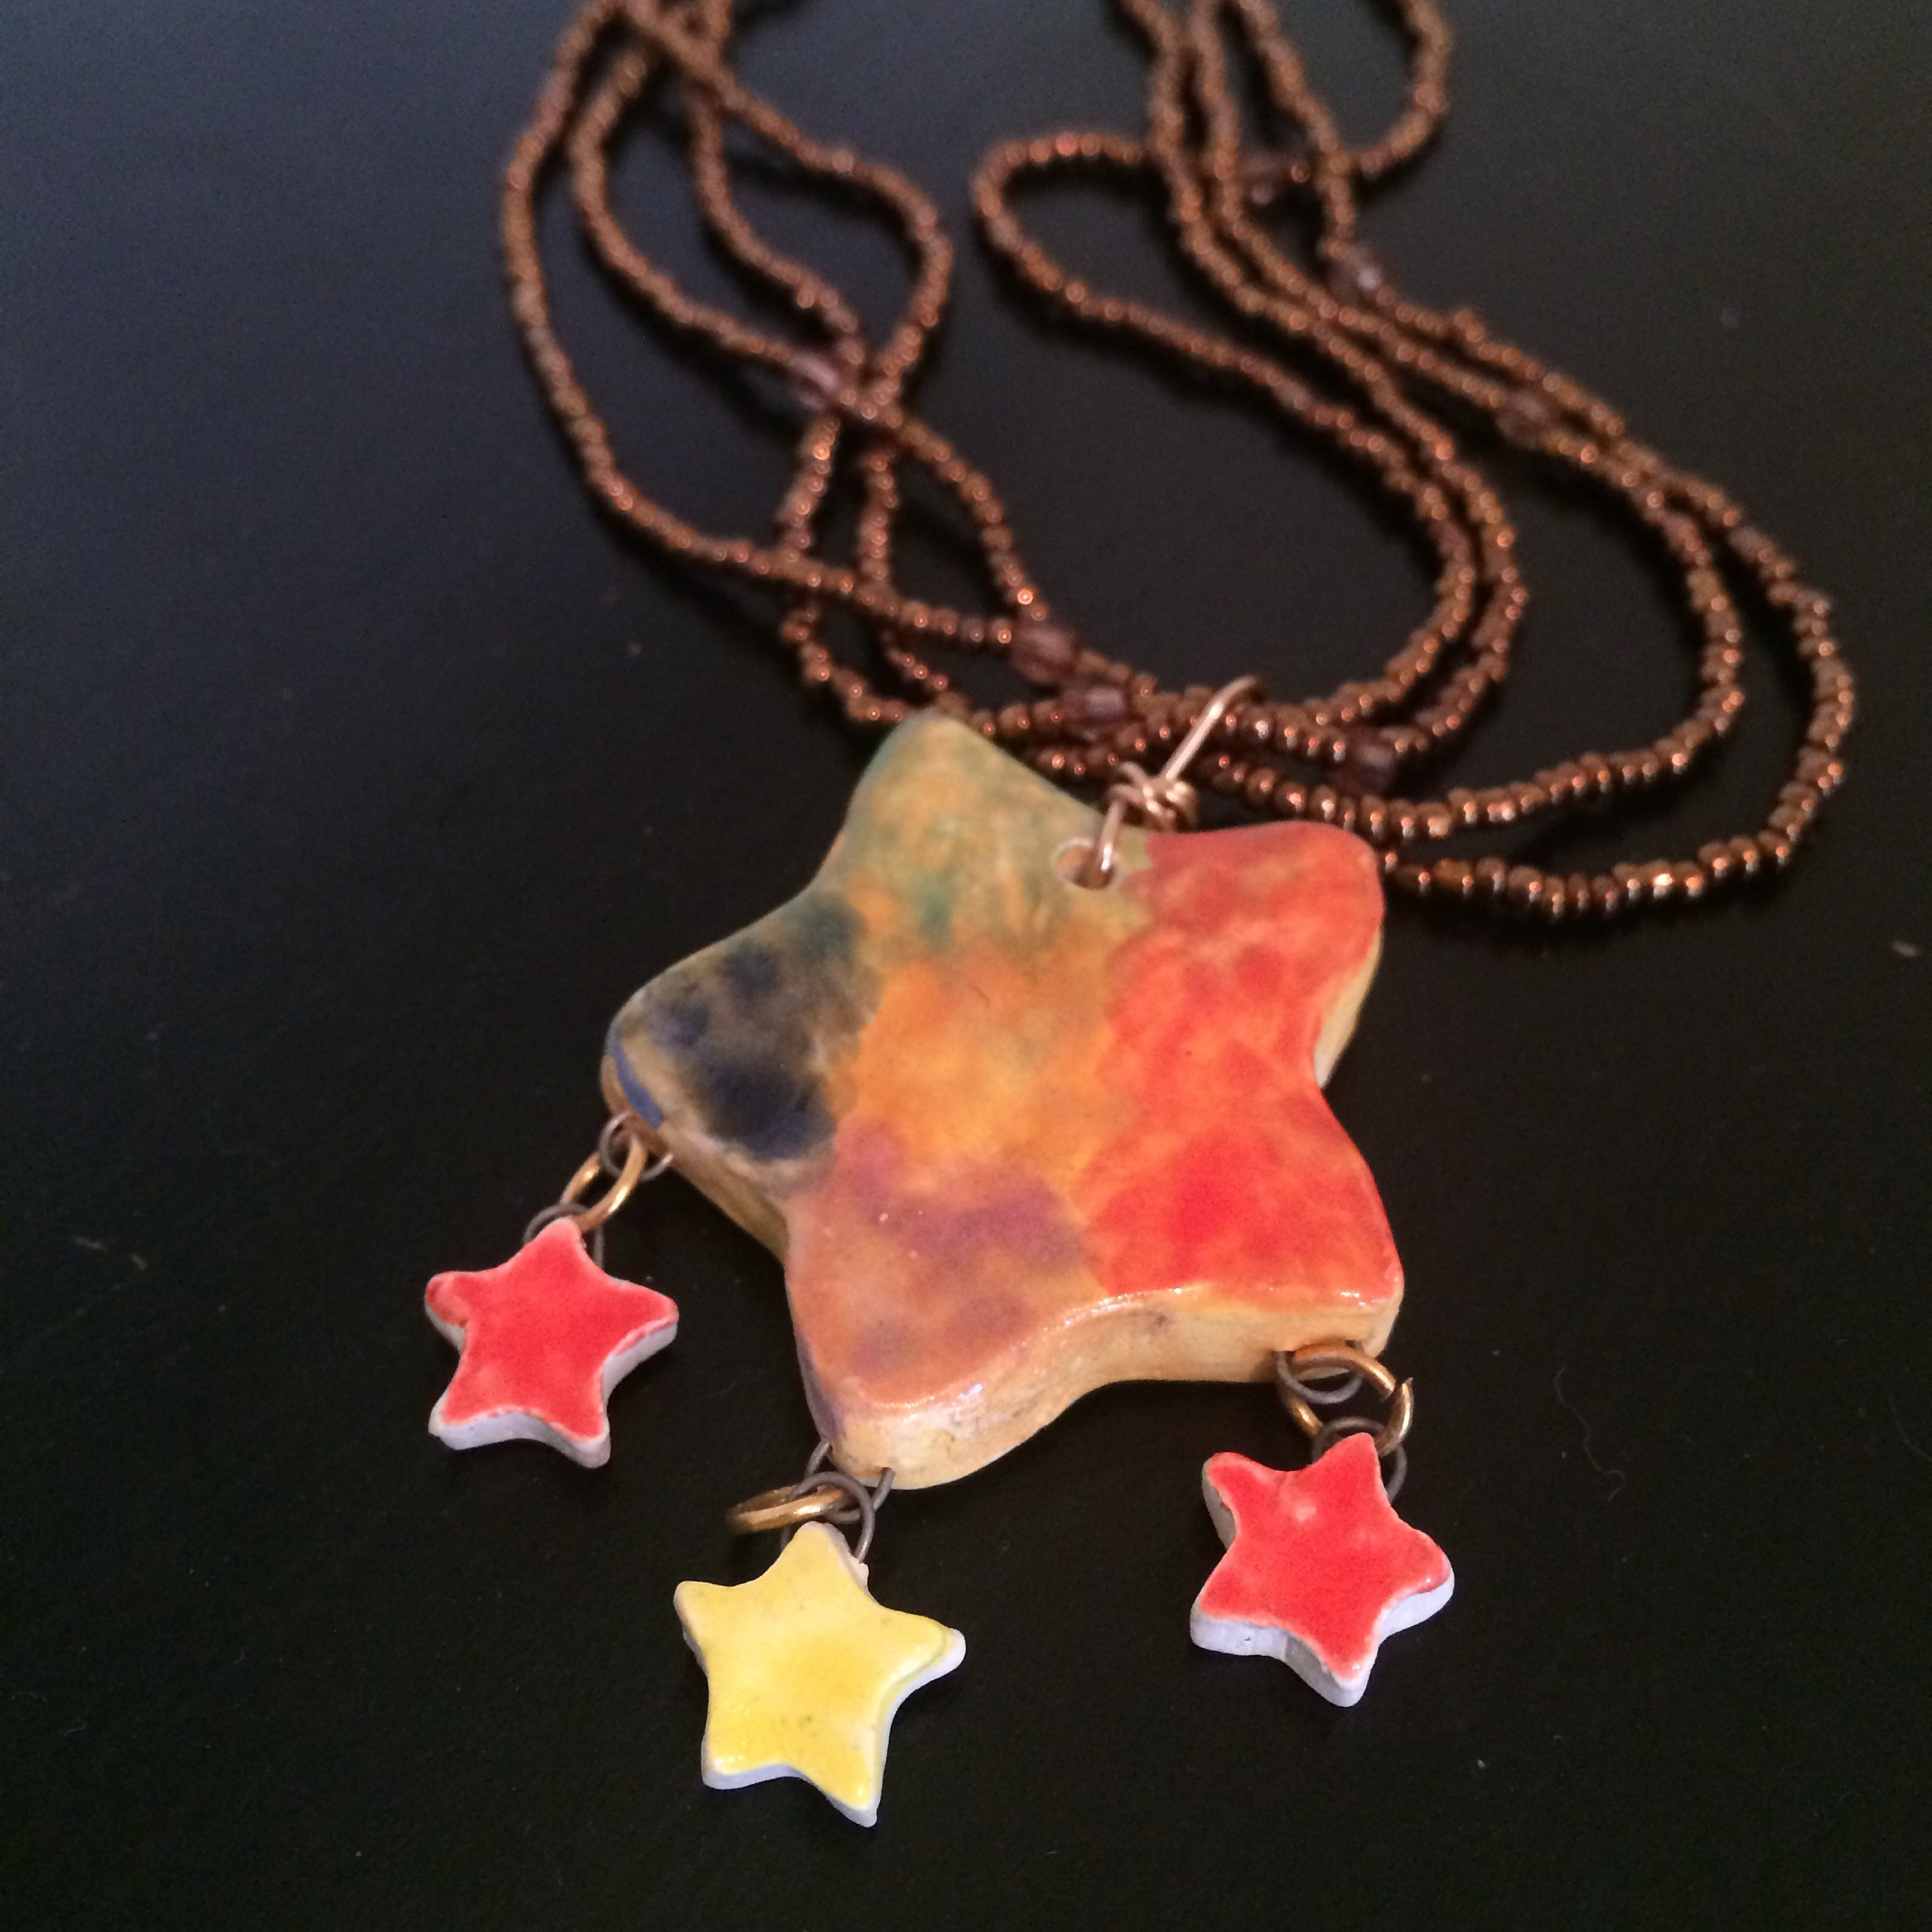 201601 Star Necklace 02